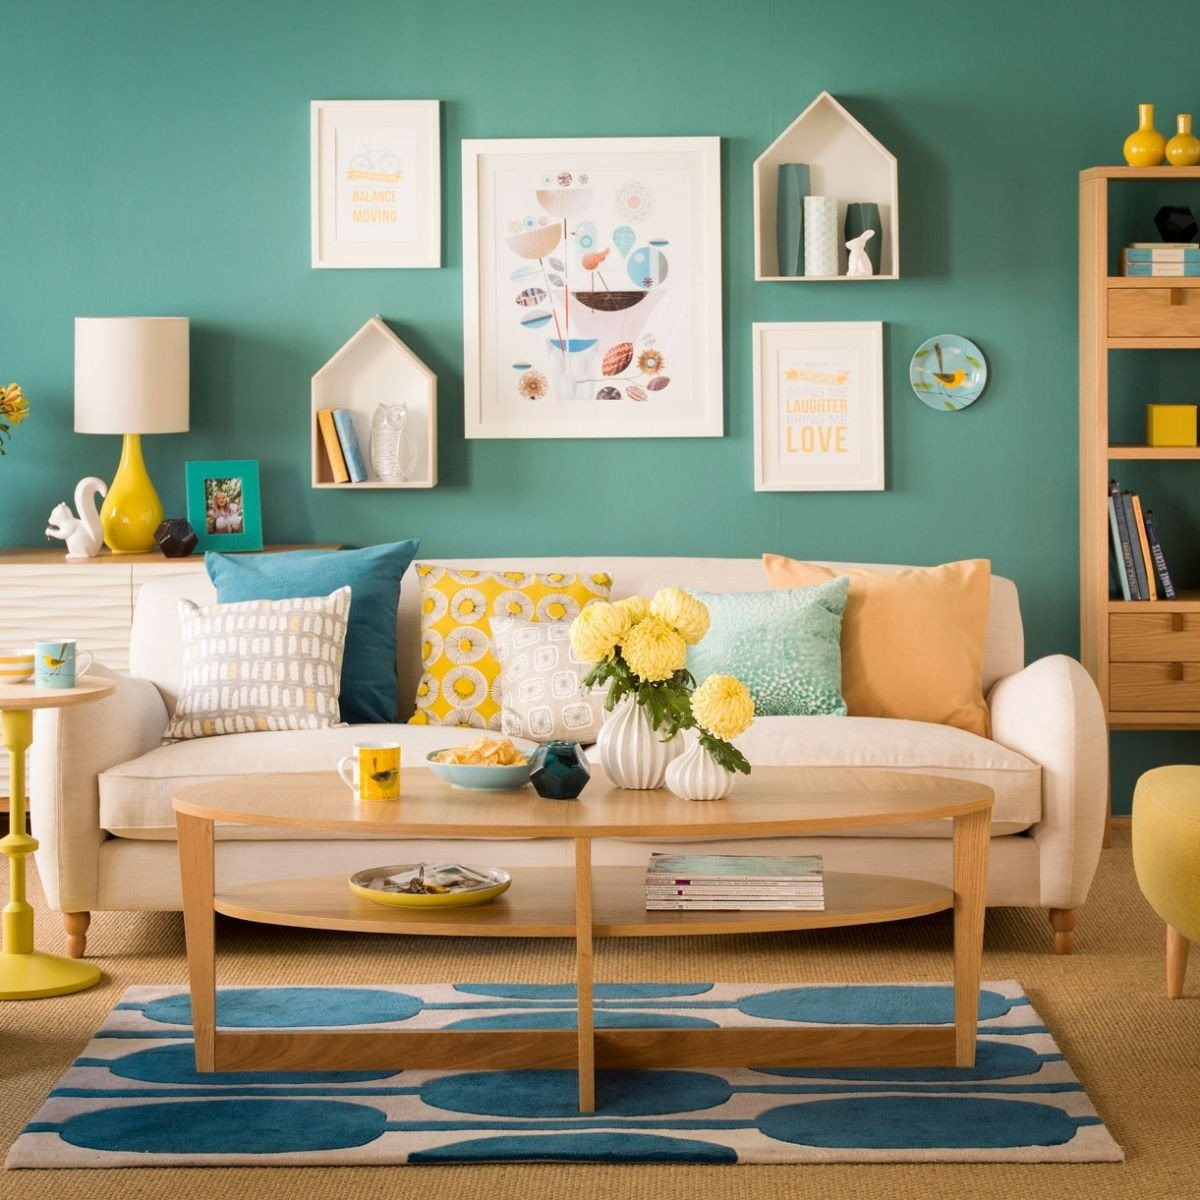 Yellow and Turquoise Bedroom Fresh Related Image